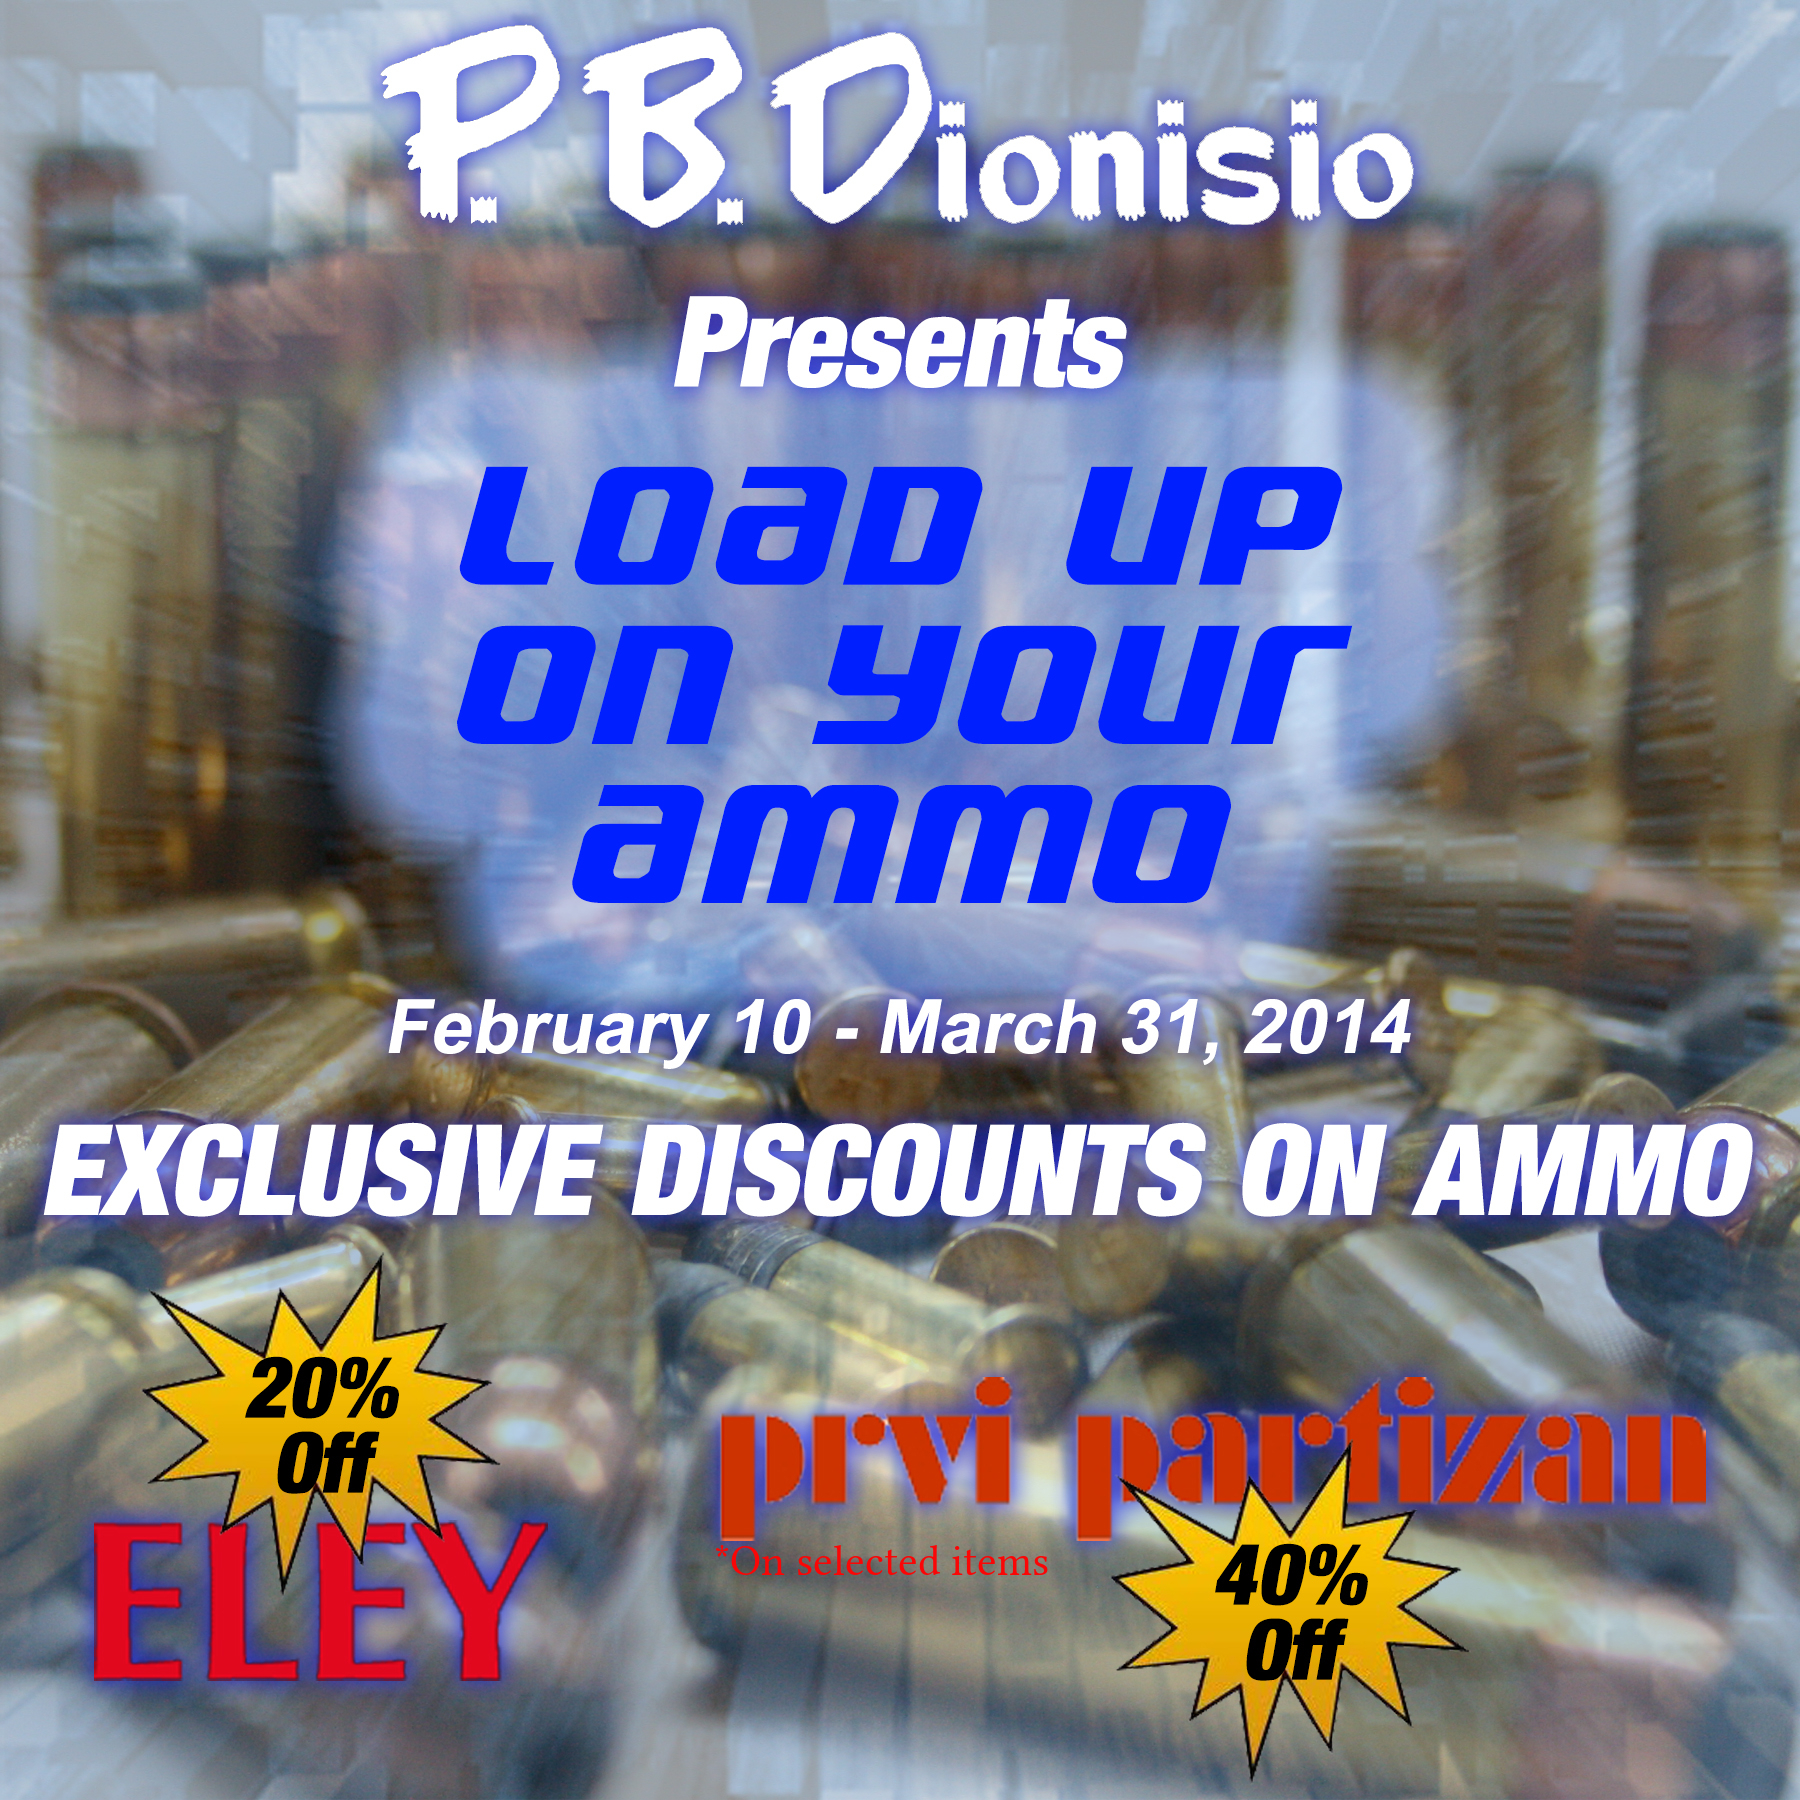 P.B.Dionisio & Co., Inc. - Pioneer in Firearms and Ammunitions in the Philippines - Load Up on Your Ammo Sale 2014